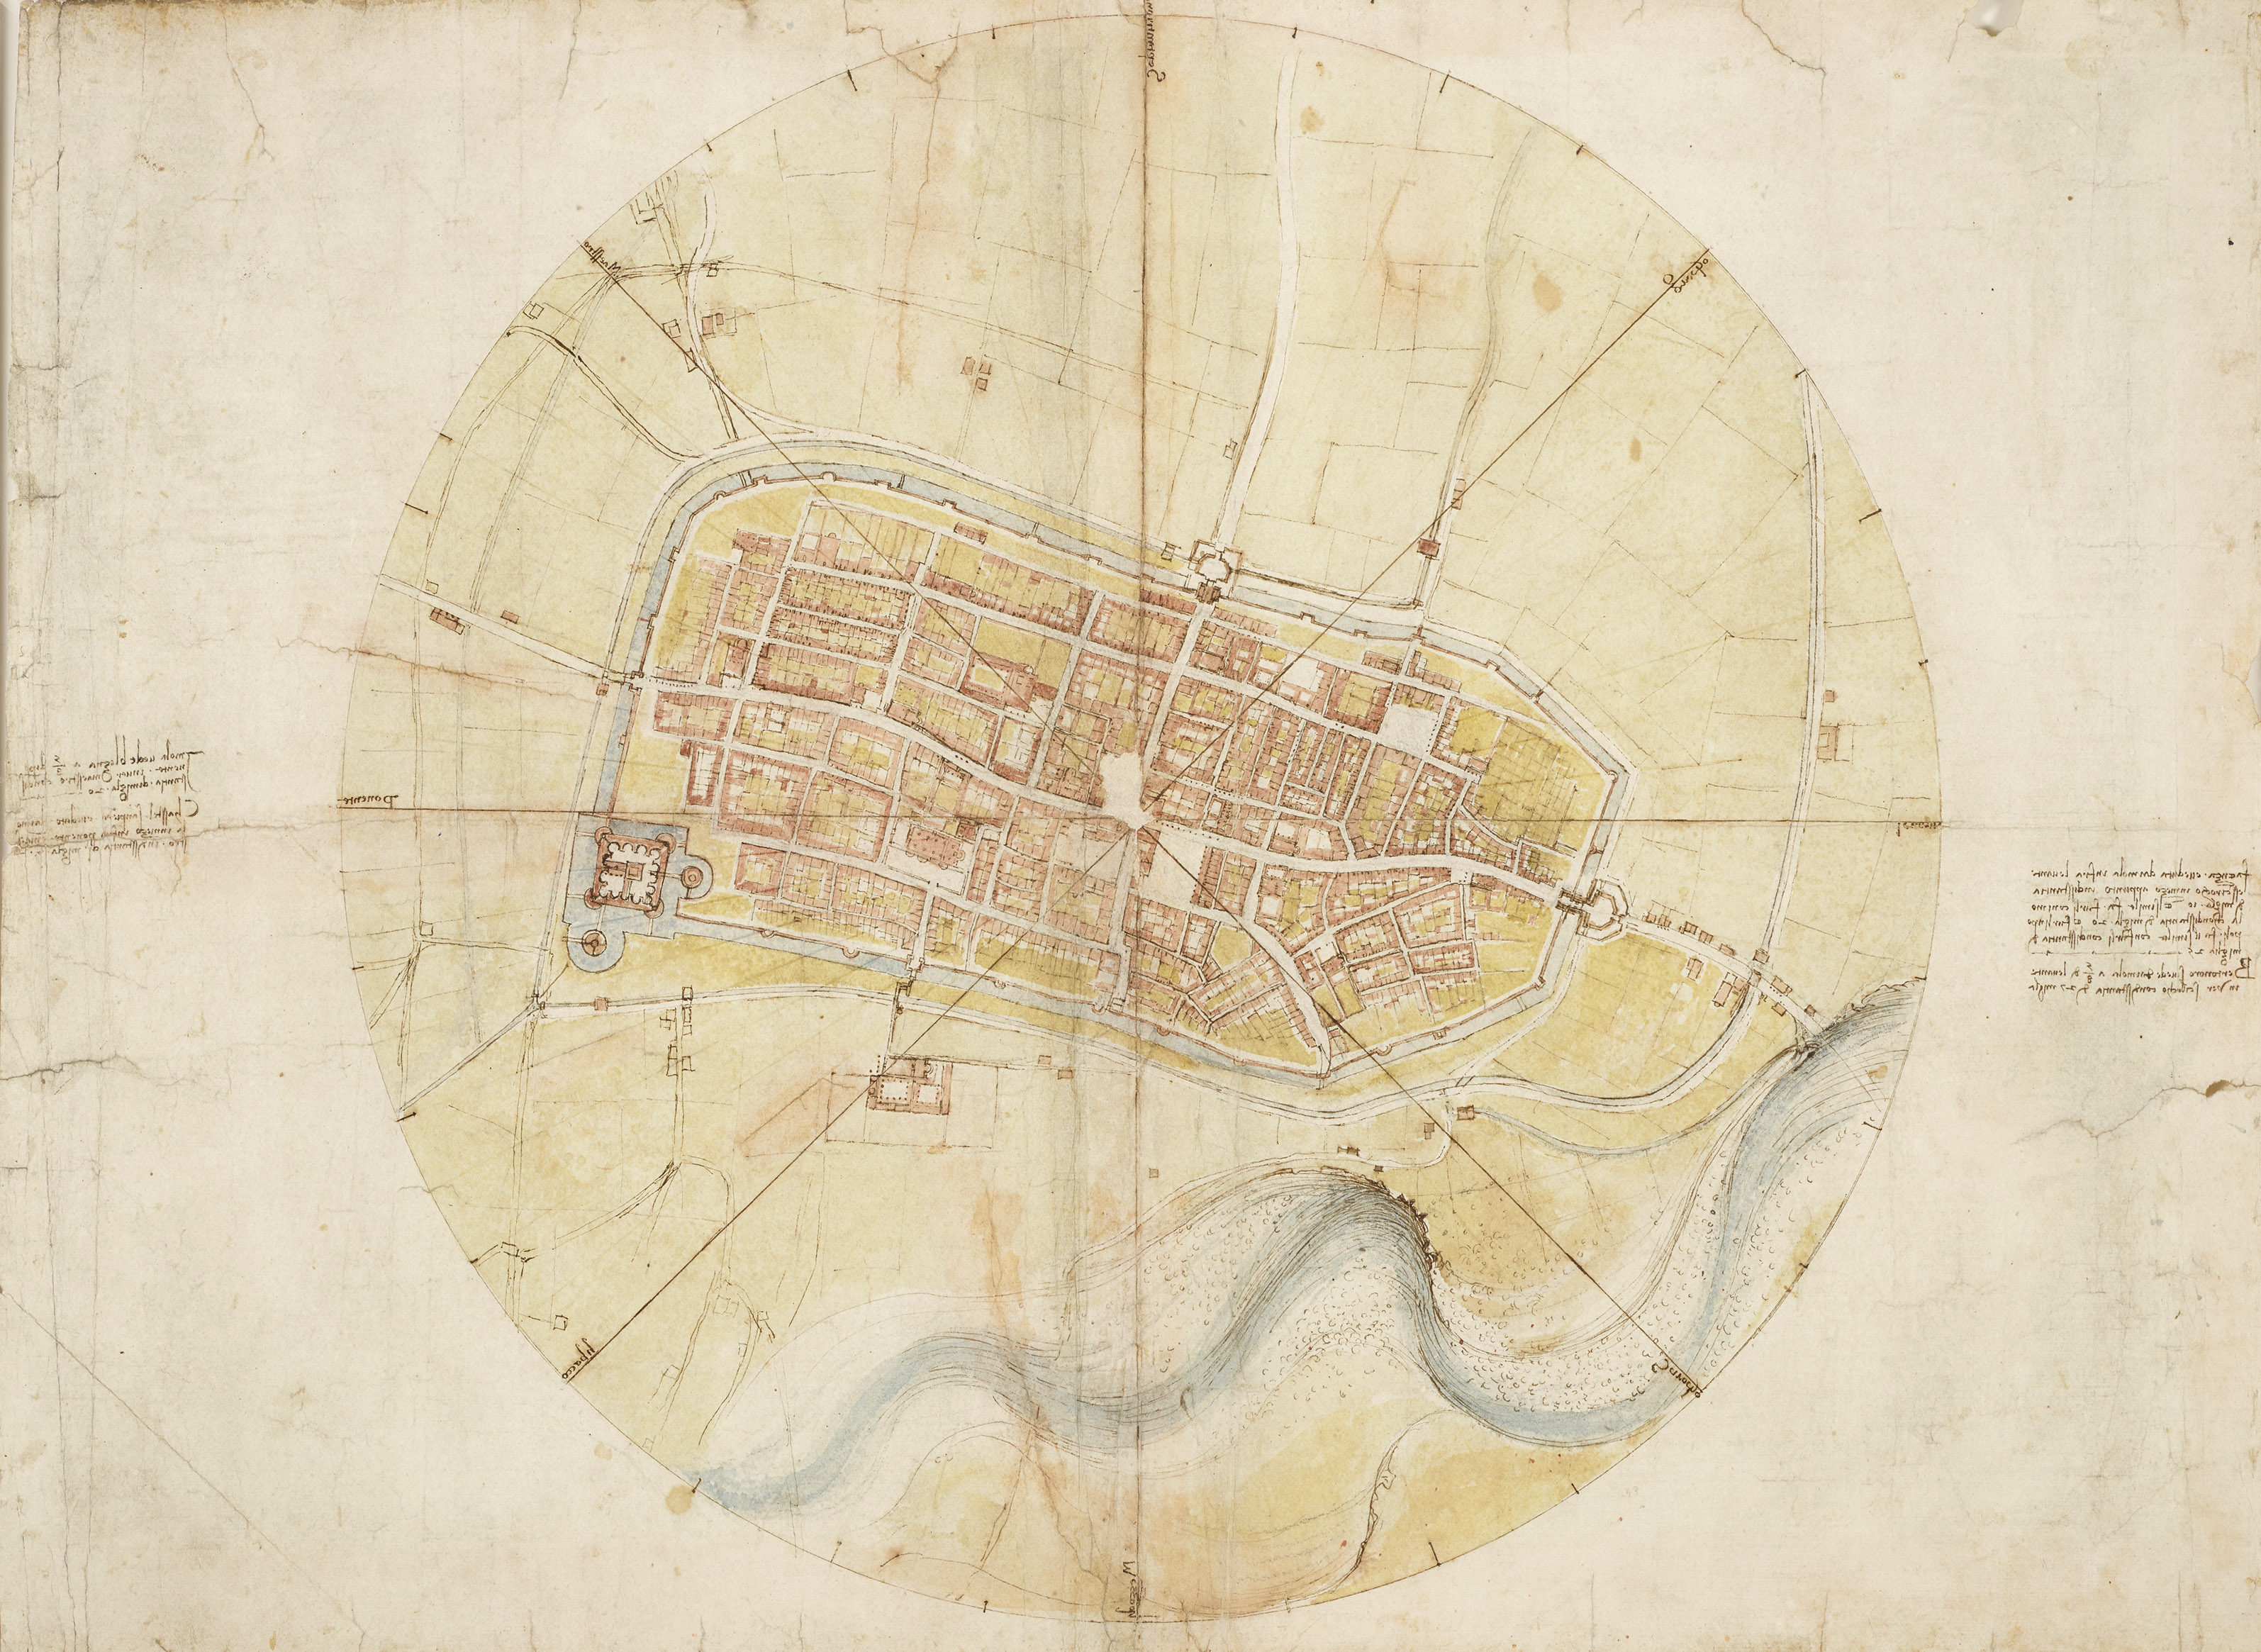 Leonardo da Vinci, A map of Imola, 1502.